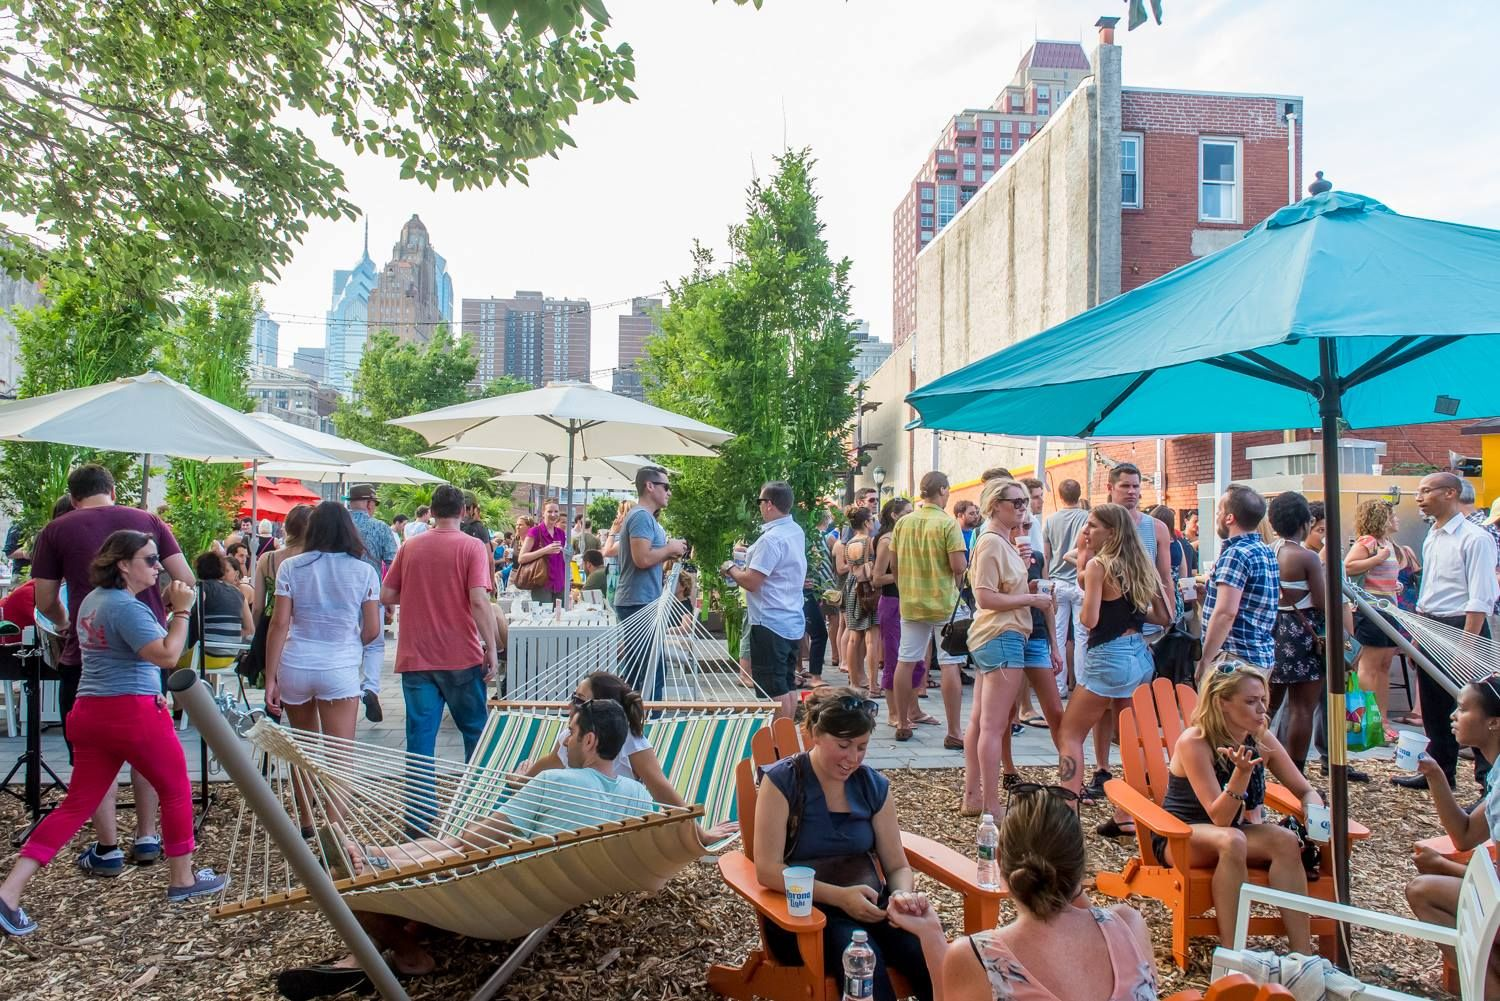 Awesome Beer Garden Ideas To Enjoying Your Day22 Beer